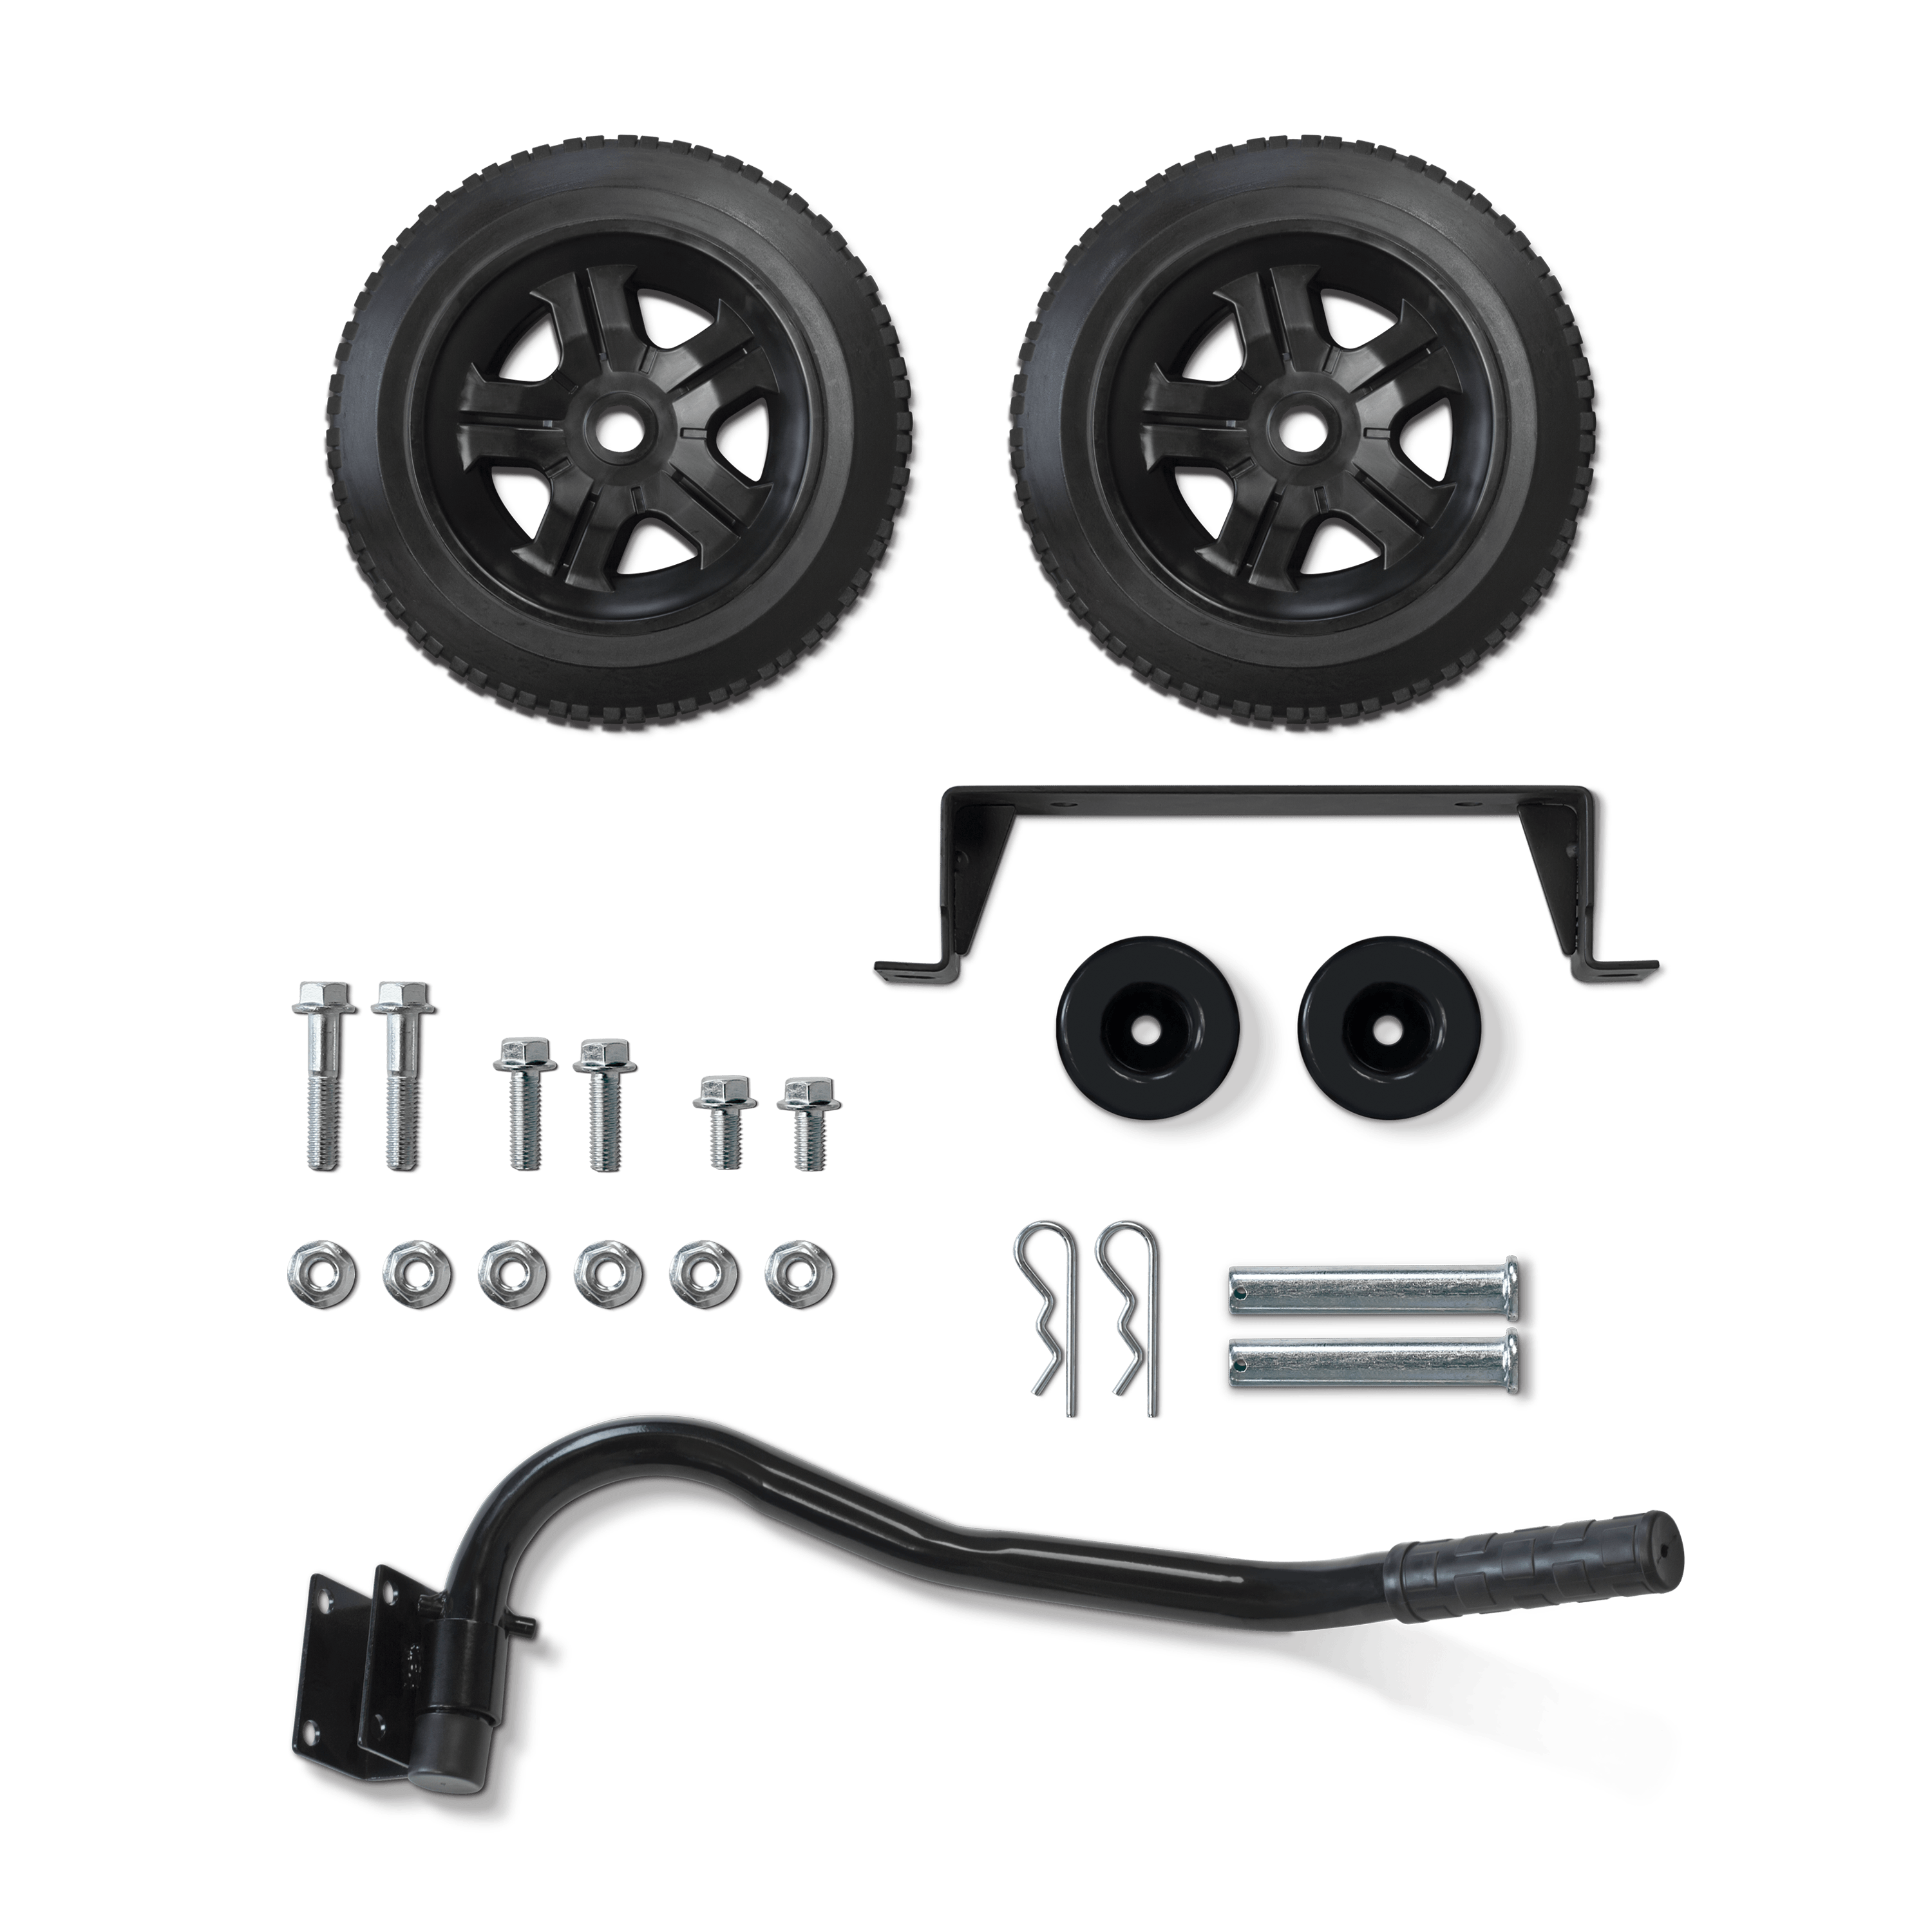 Champion 40065 Wheel Kit with Folding Handle and Never-Flat Tires for 2800 to 4750-Watt Generators